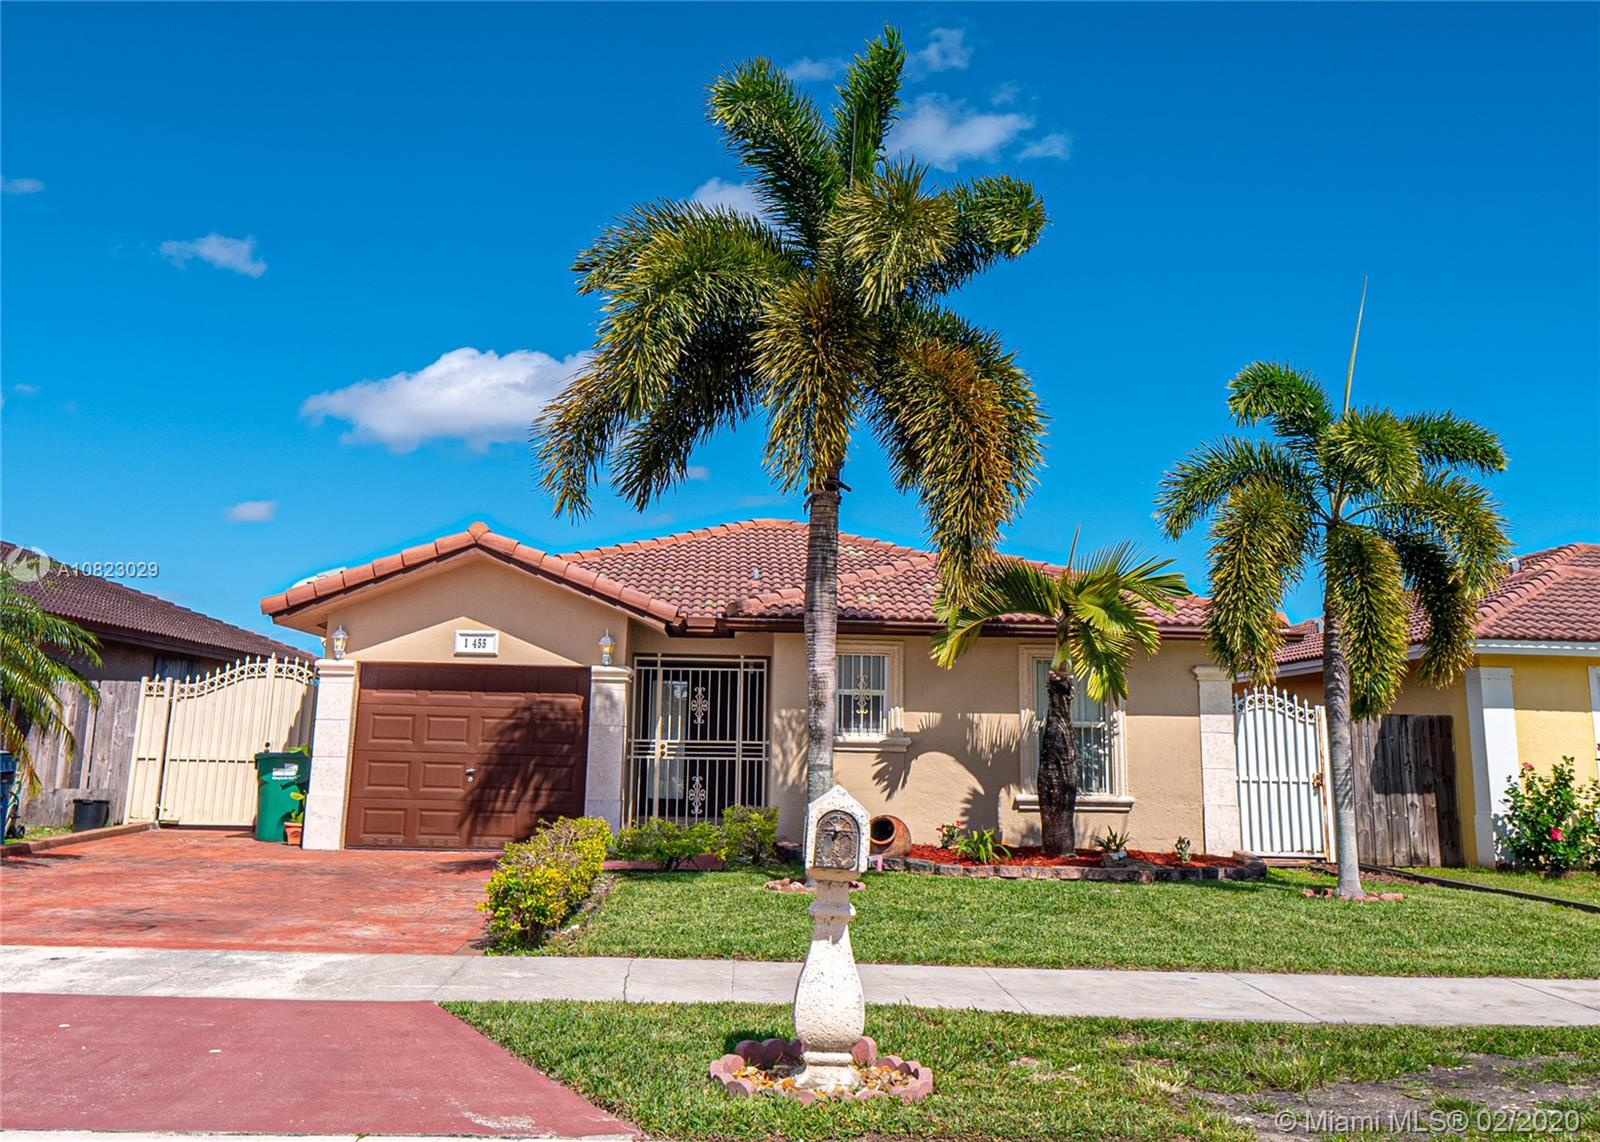 13455 SW 278th Ter, Homestead, FL 33032 - Homestead, FL real estate listing